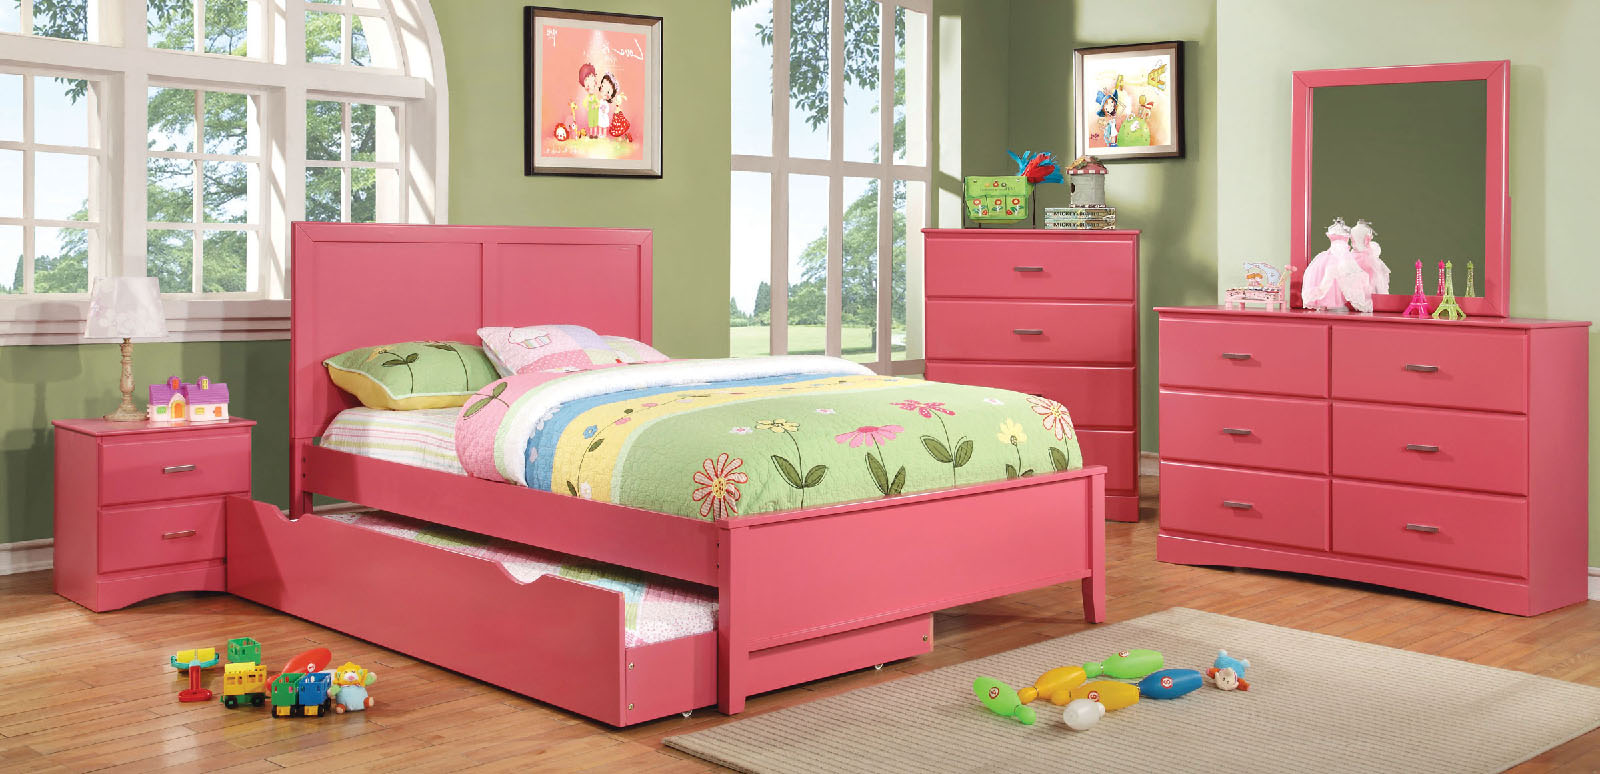 wood bedroom set las vegas furniture store modern home furniture